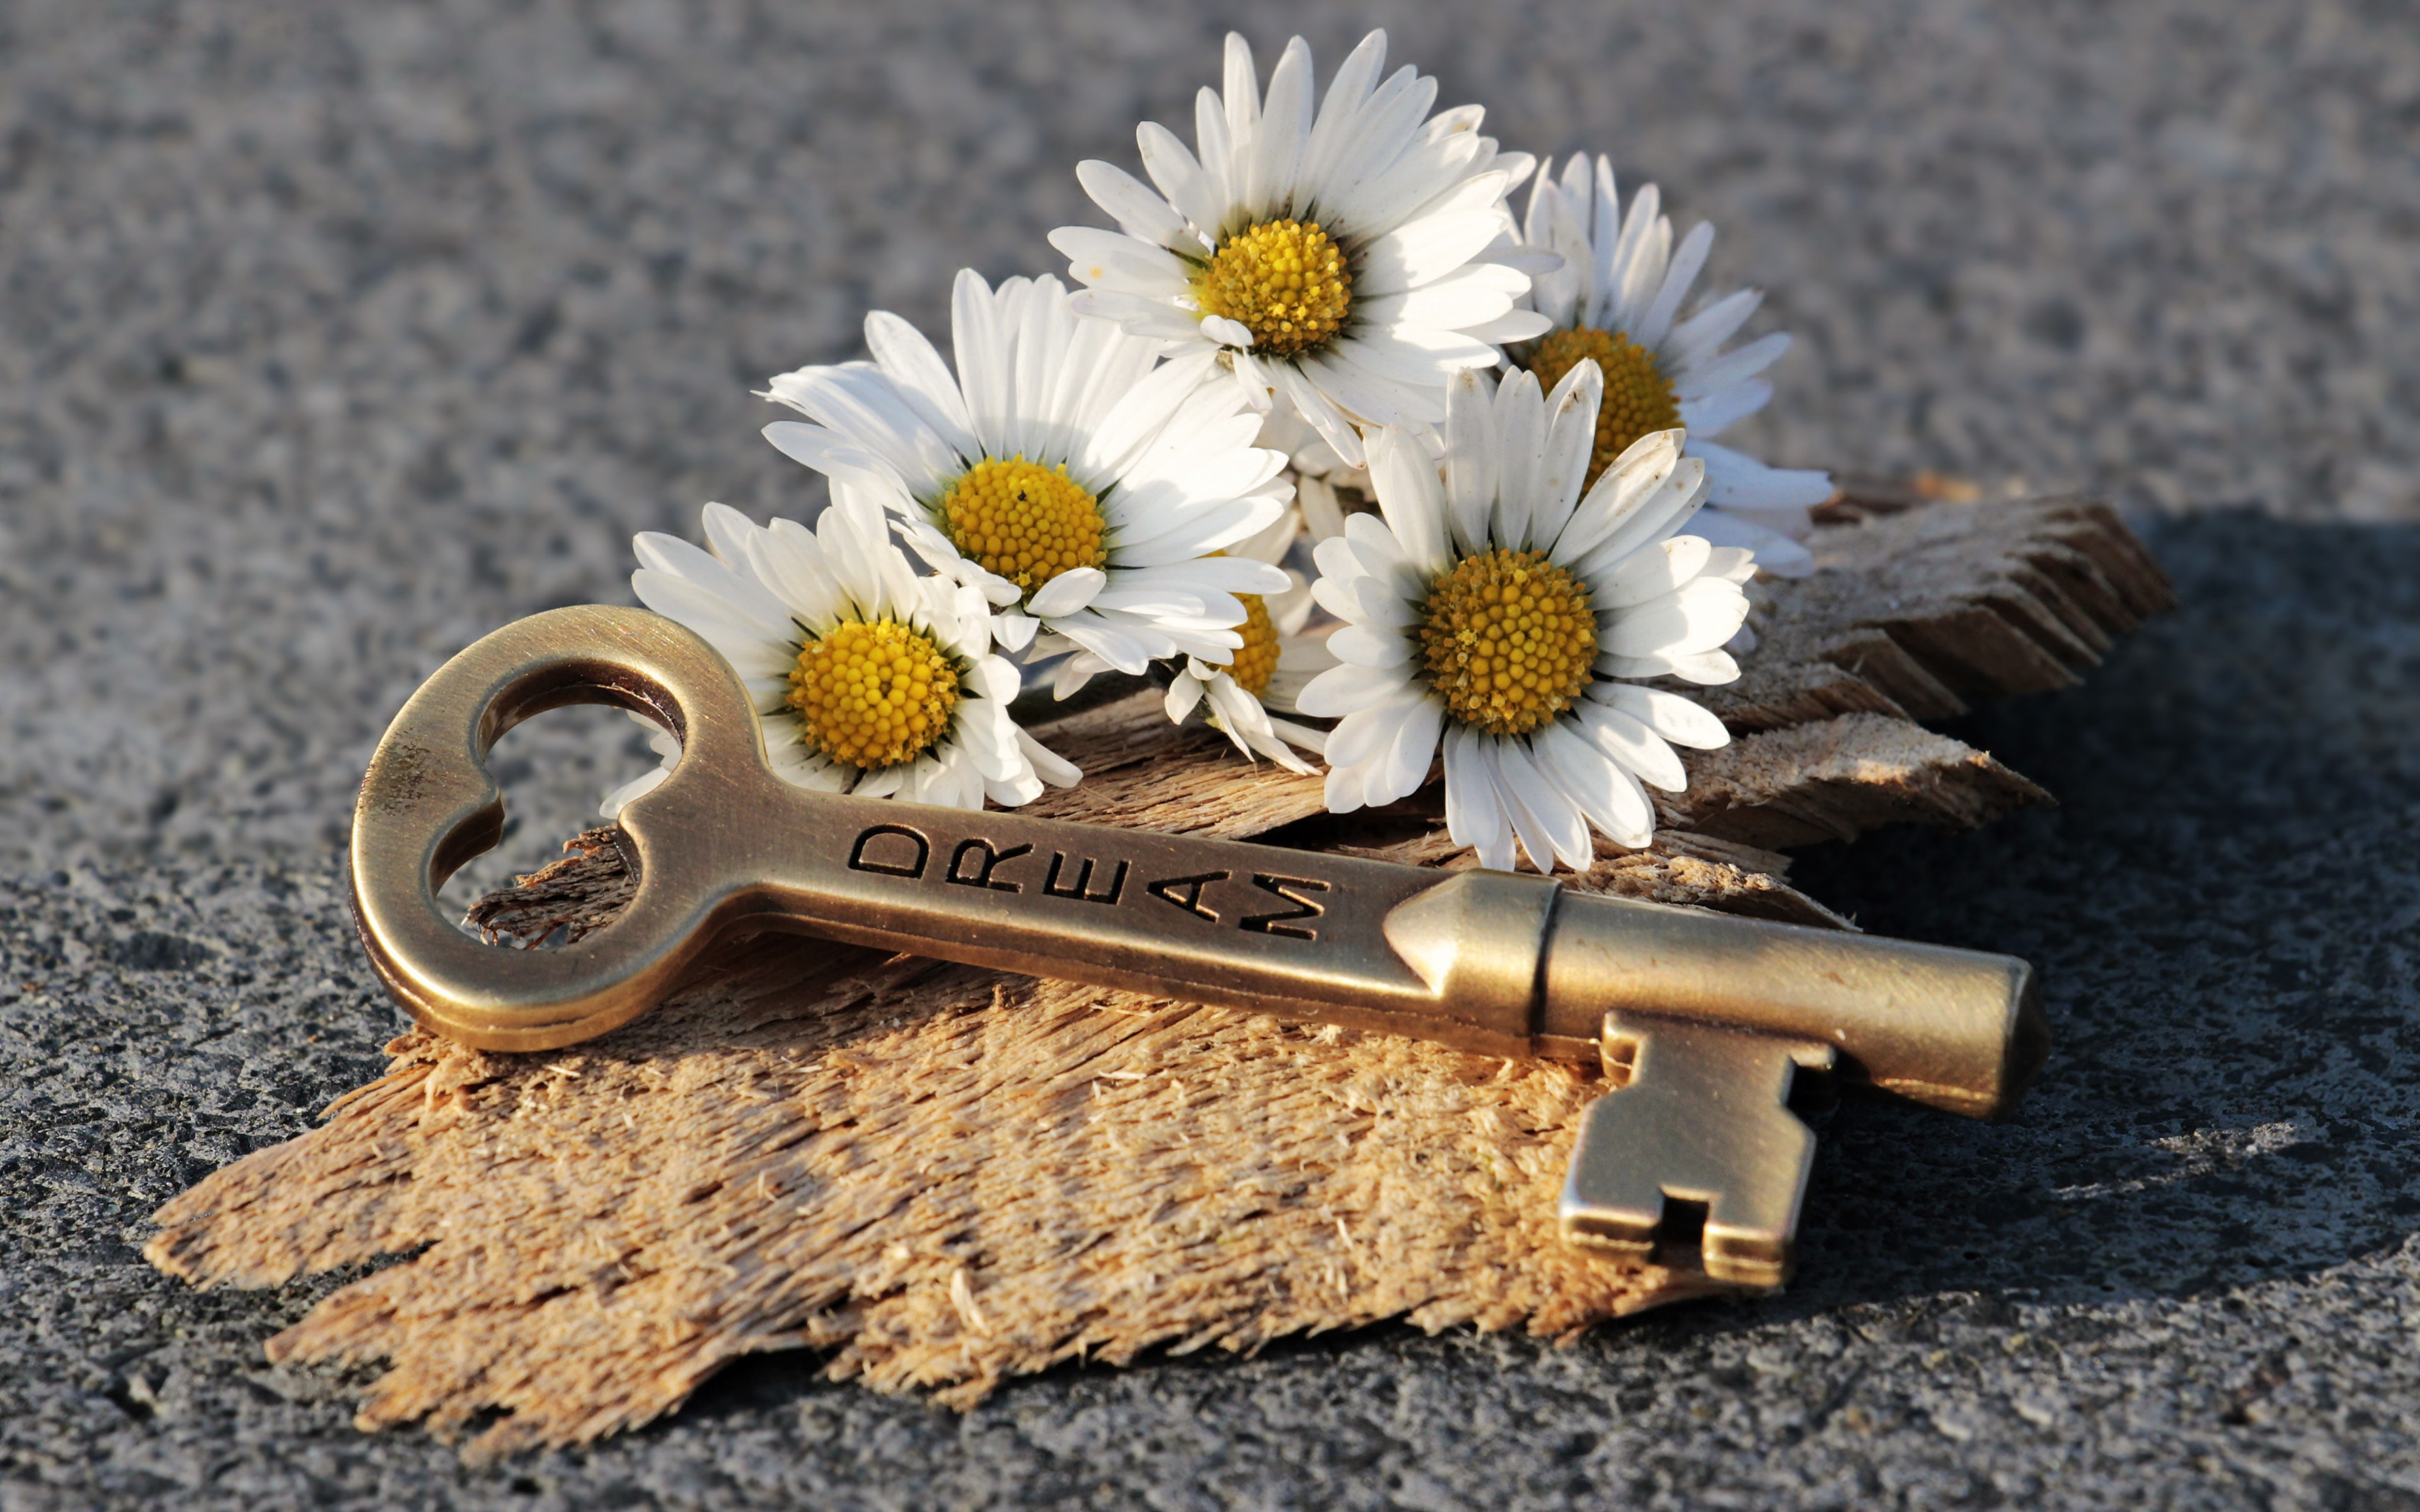 The dreams key and daisy flowers | 3840x2400 wallpaper